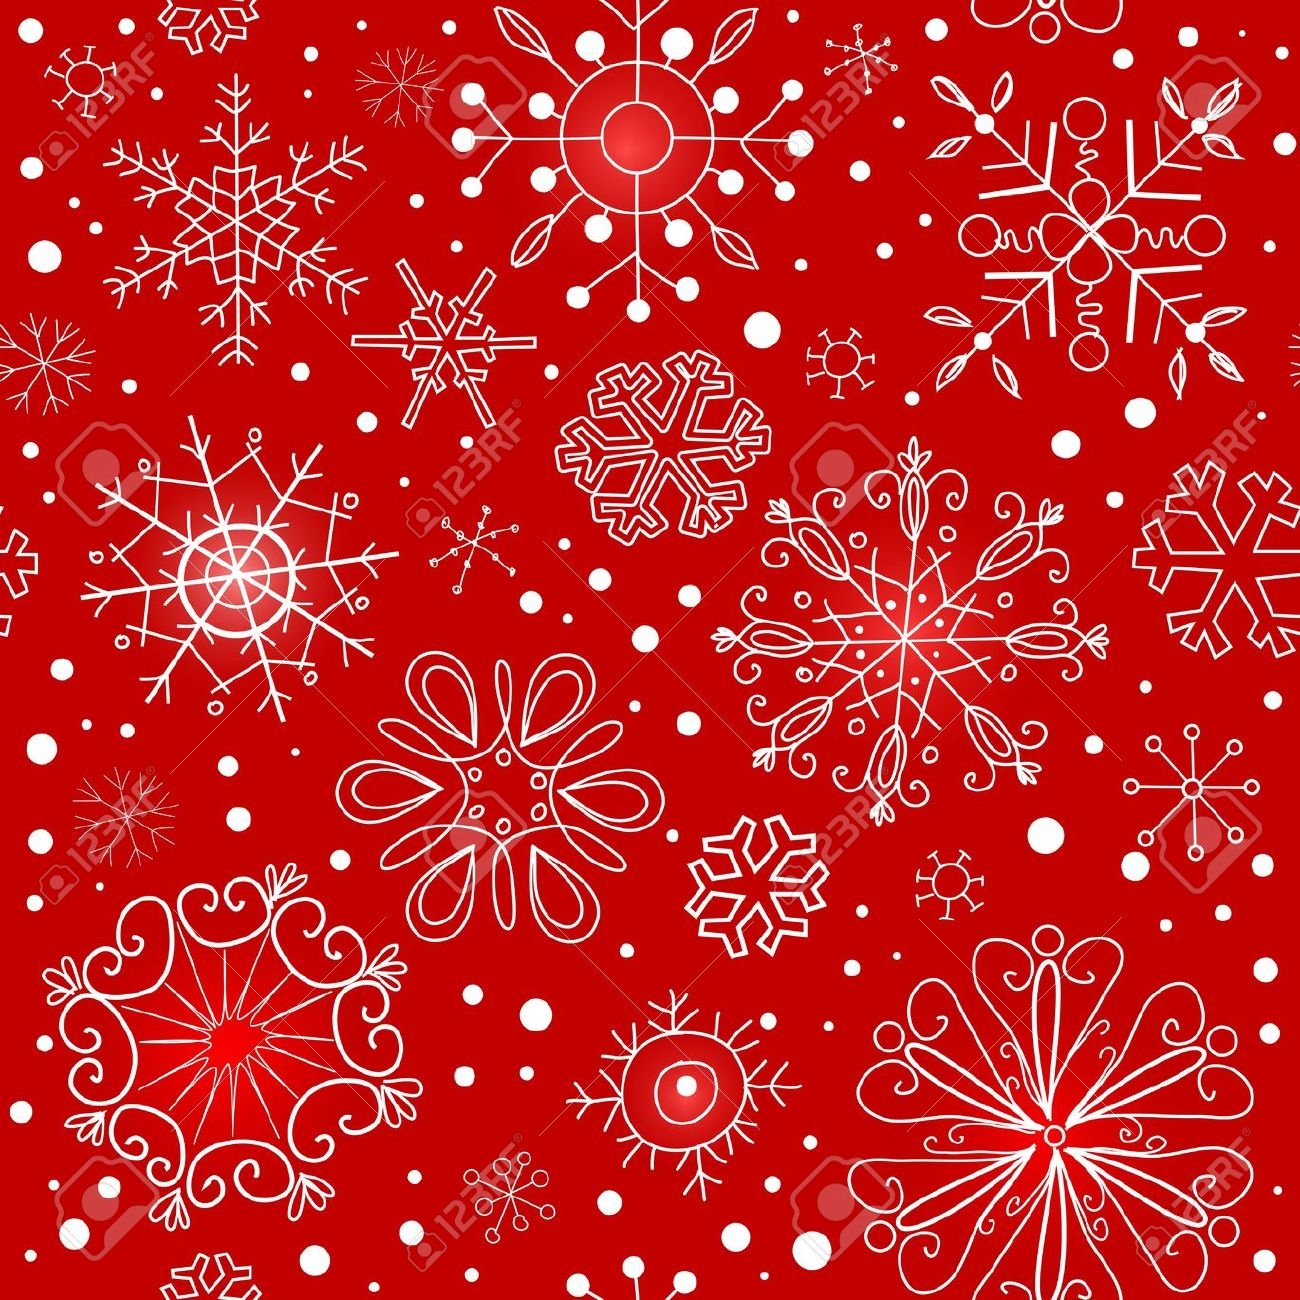 Free christmas wrapping paper clipart.